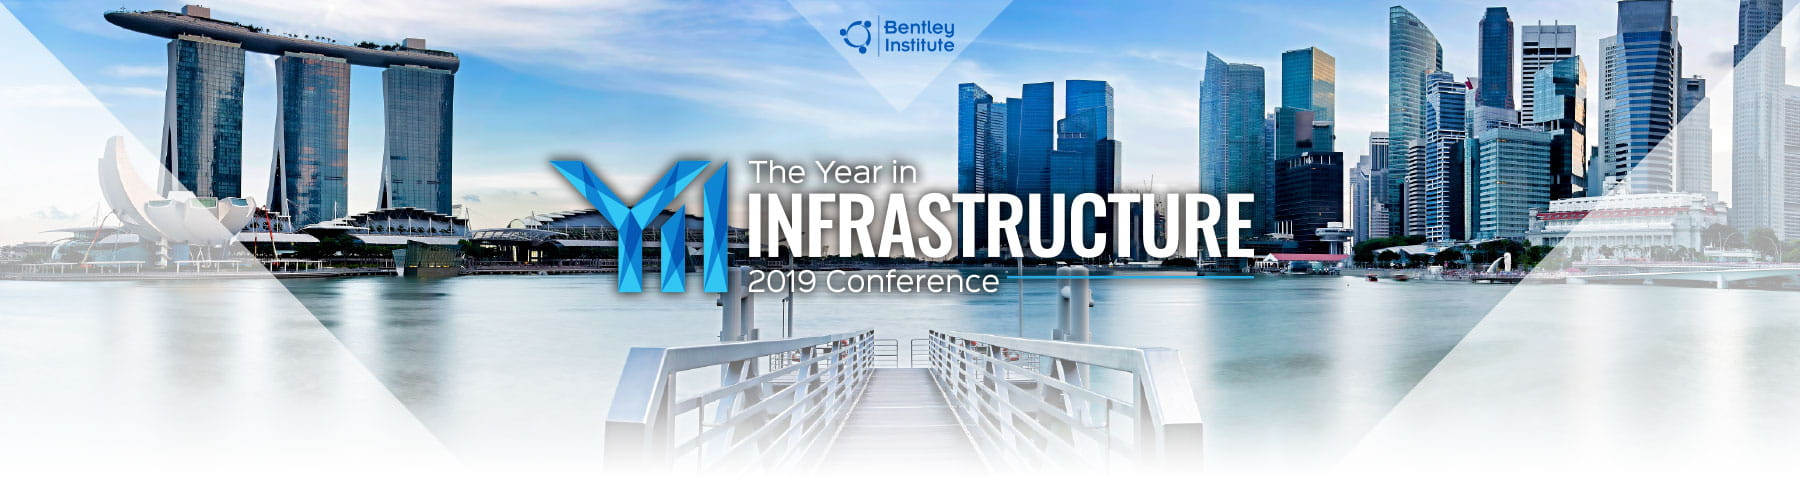 Bentley learn conference